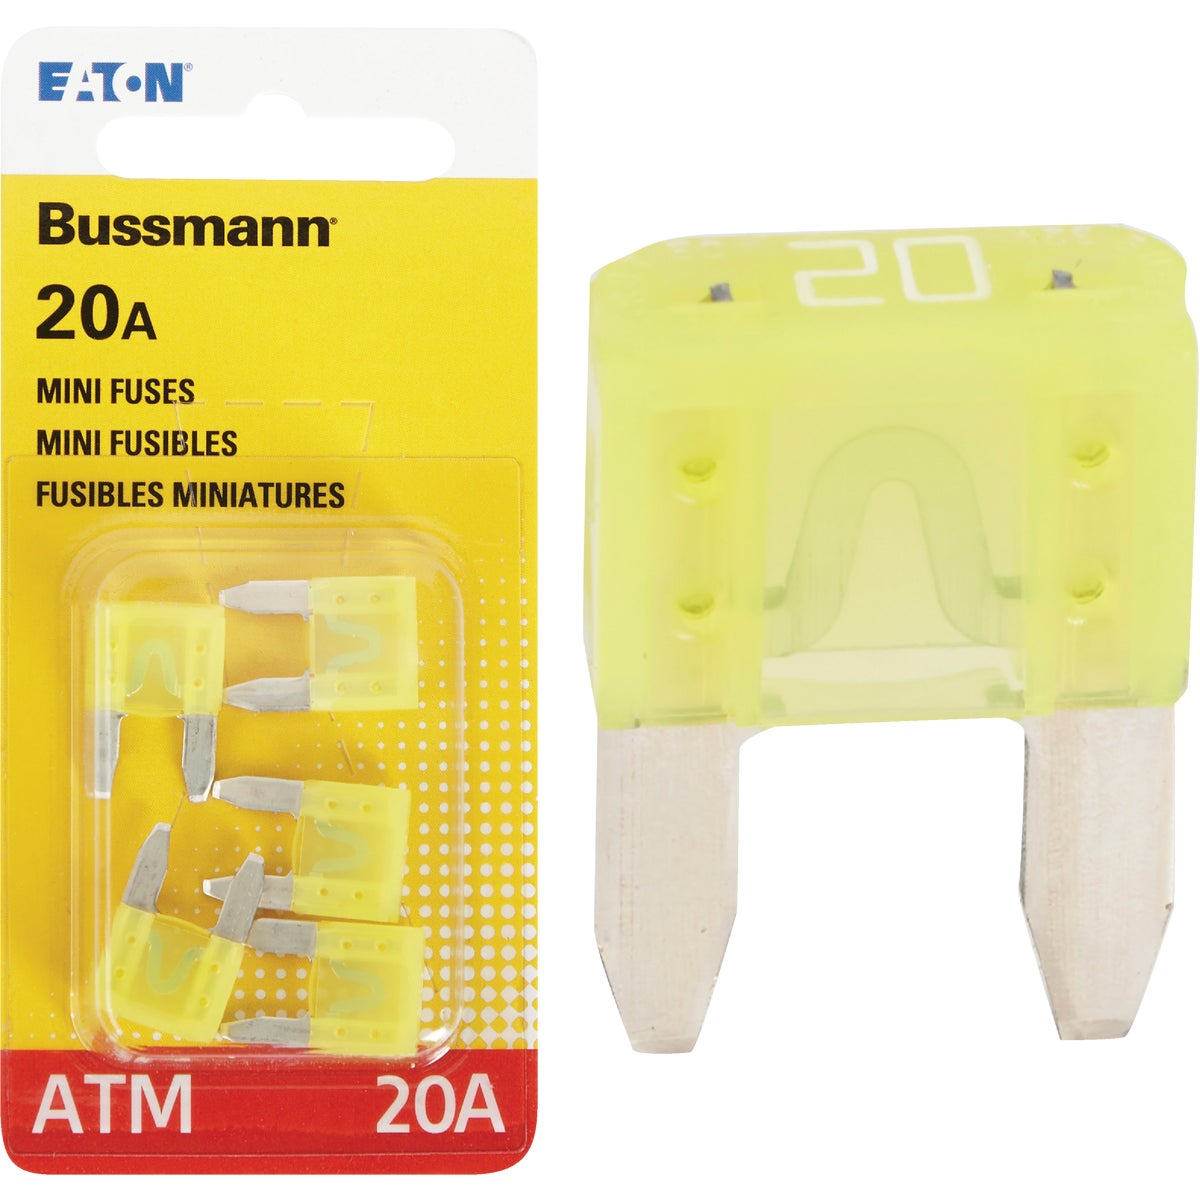 20AMP MINI FUSE - BP/ATM-20-RP by Bussmann Cooper